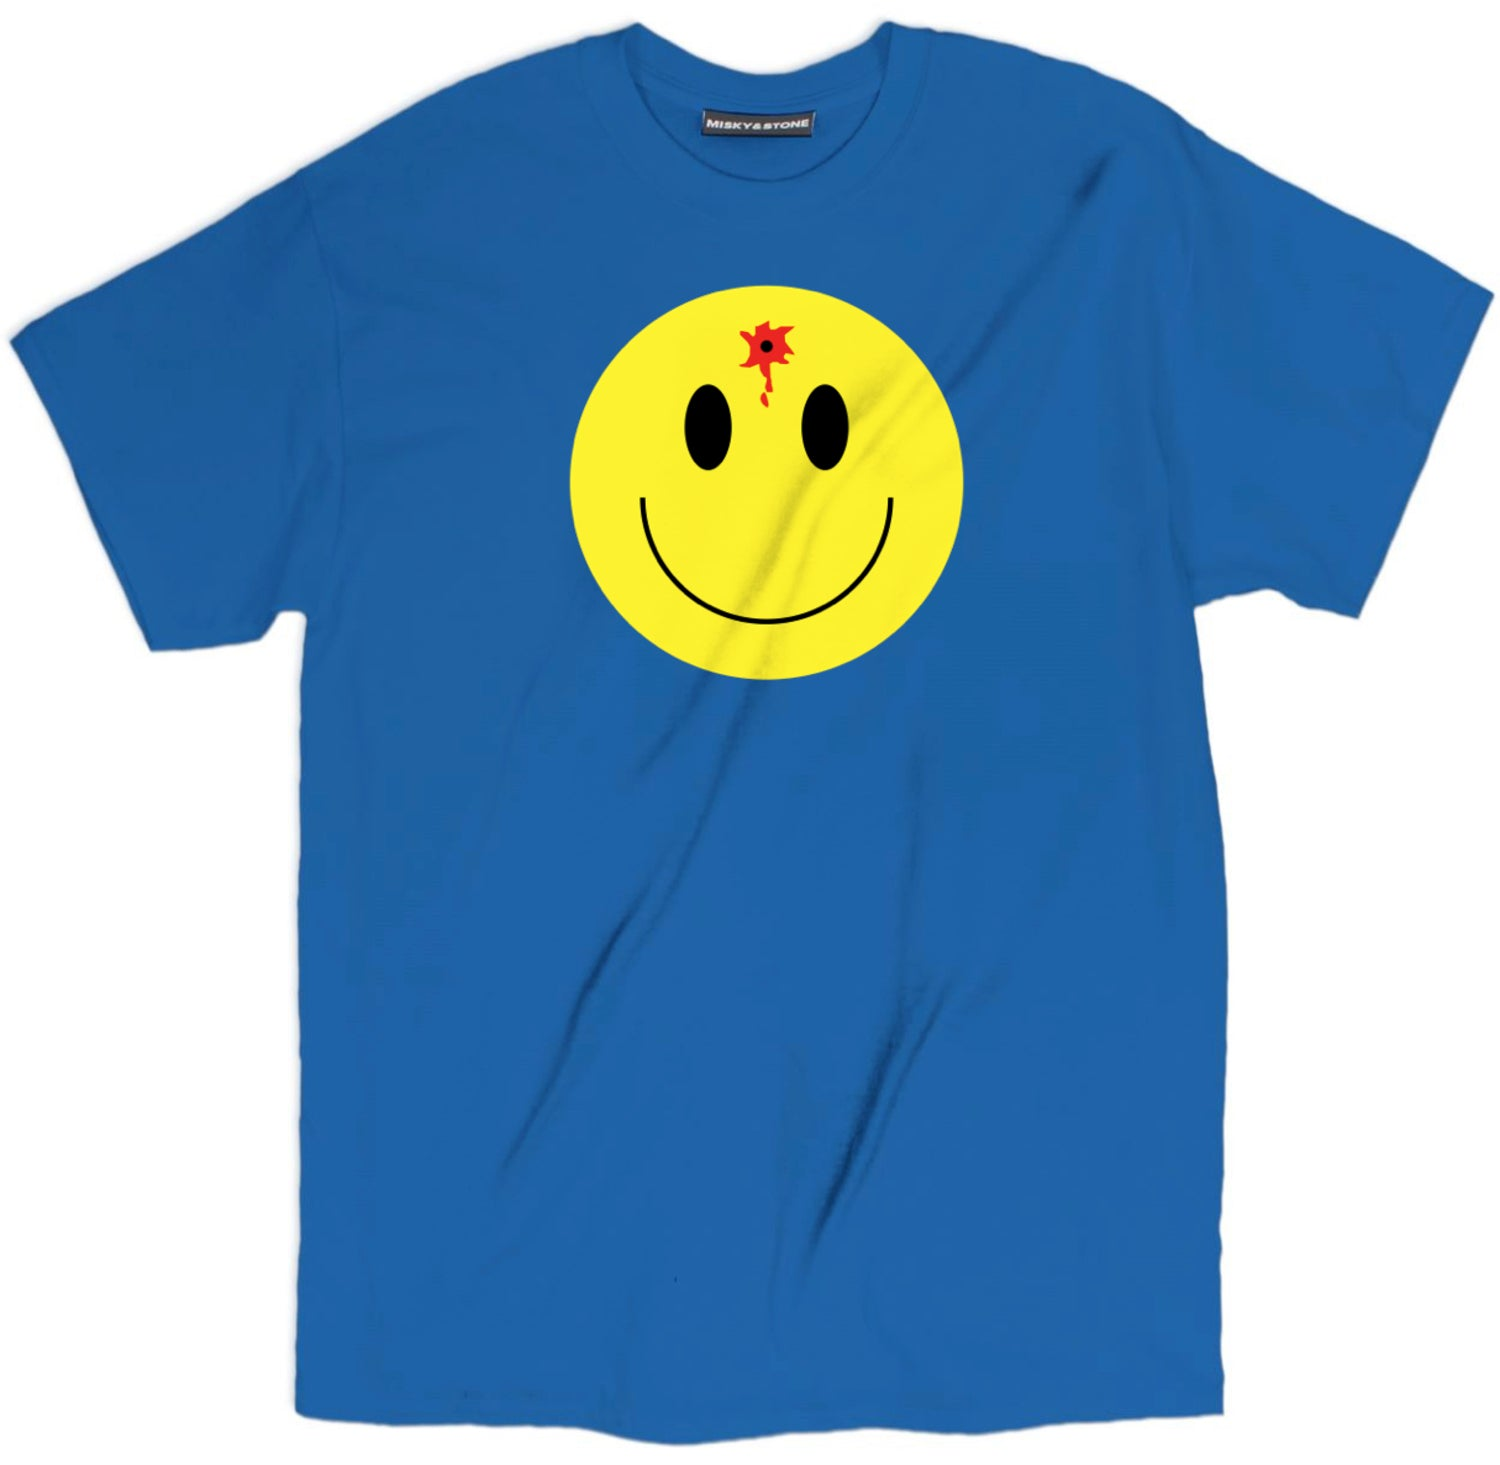 Smiley Face With Bullet Hole Shirt